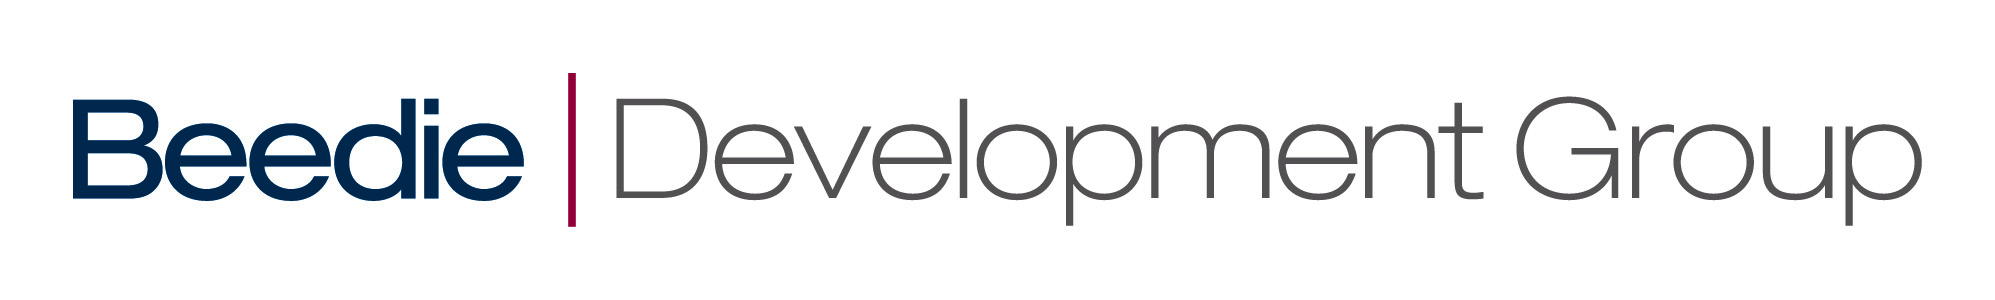 BEEDIE_developgroup_final_logo_spot